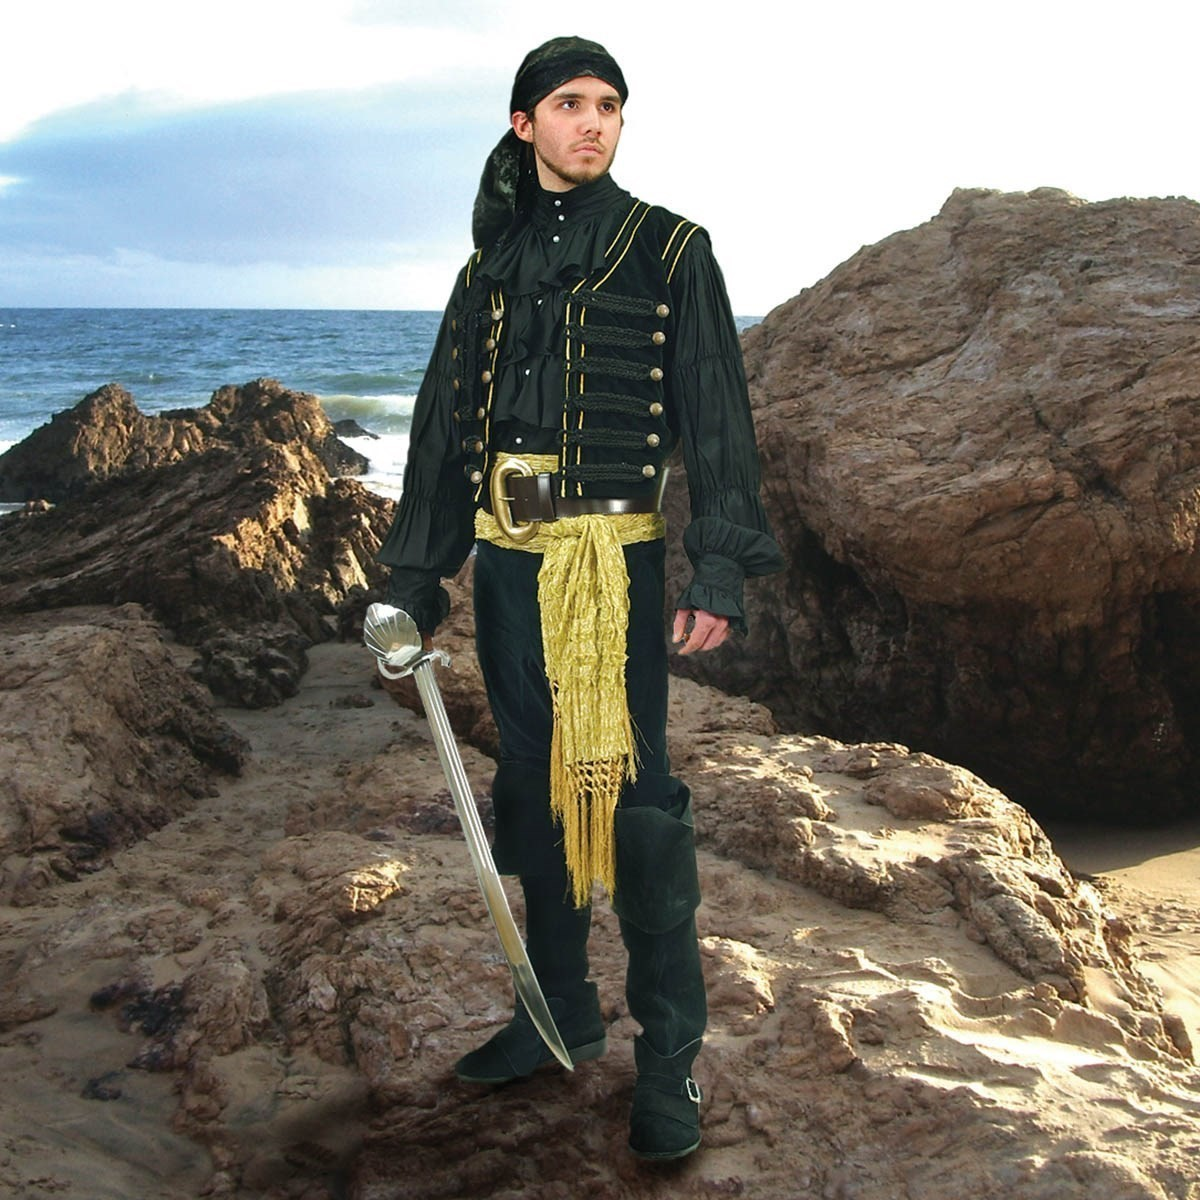 Pirate or Gypsy Gold Tasseled Sash